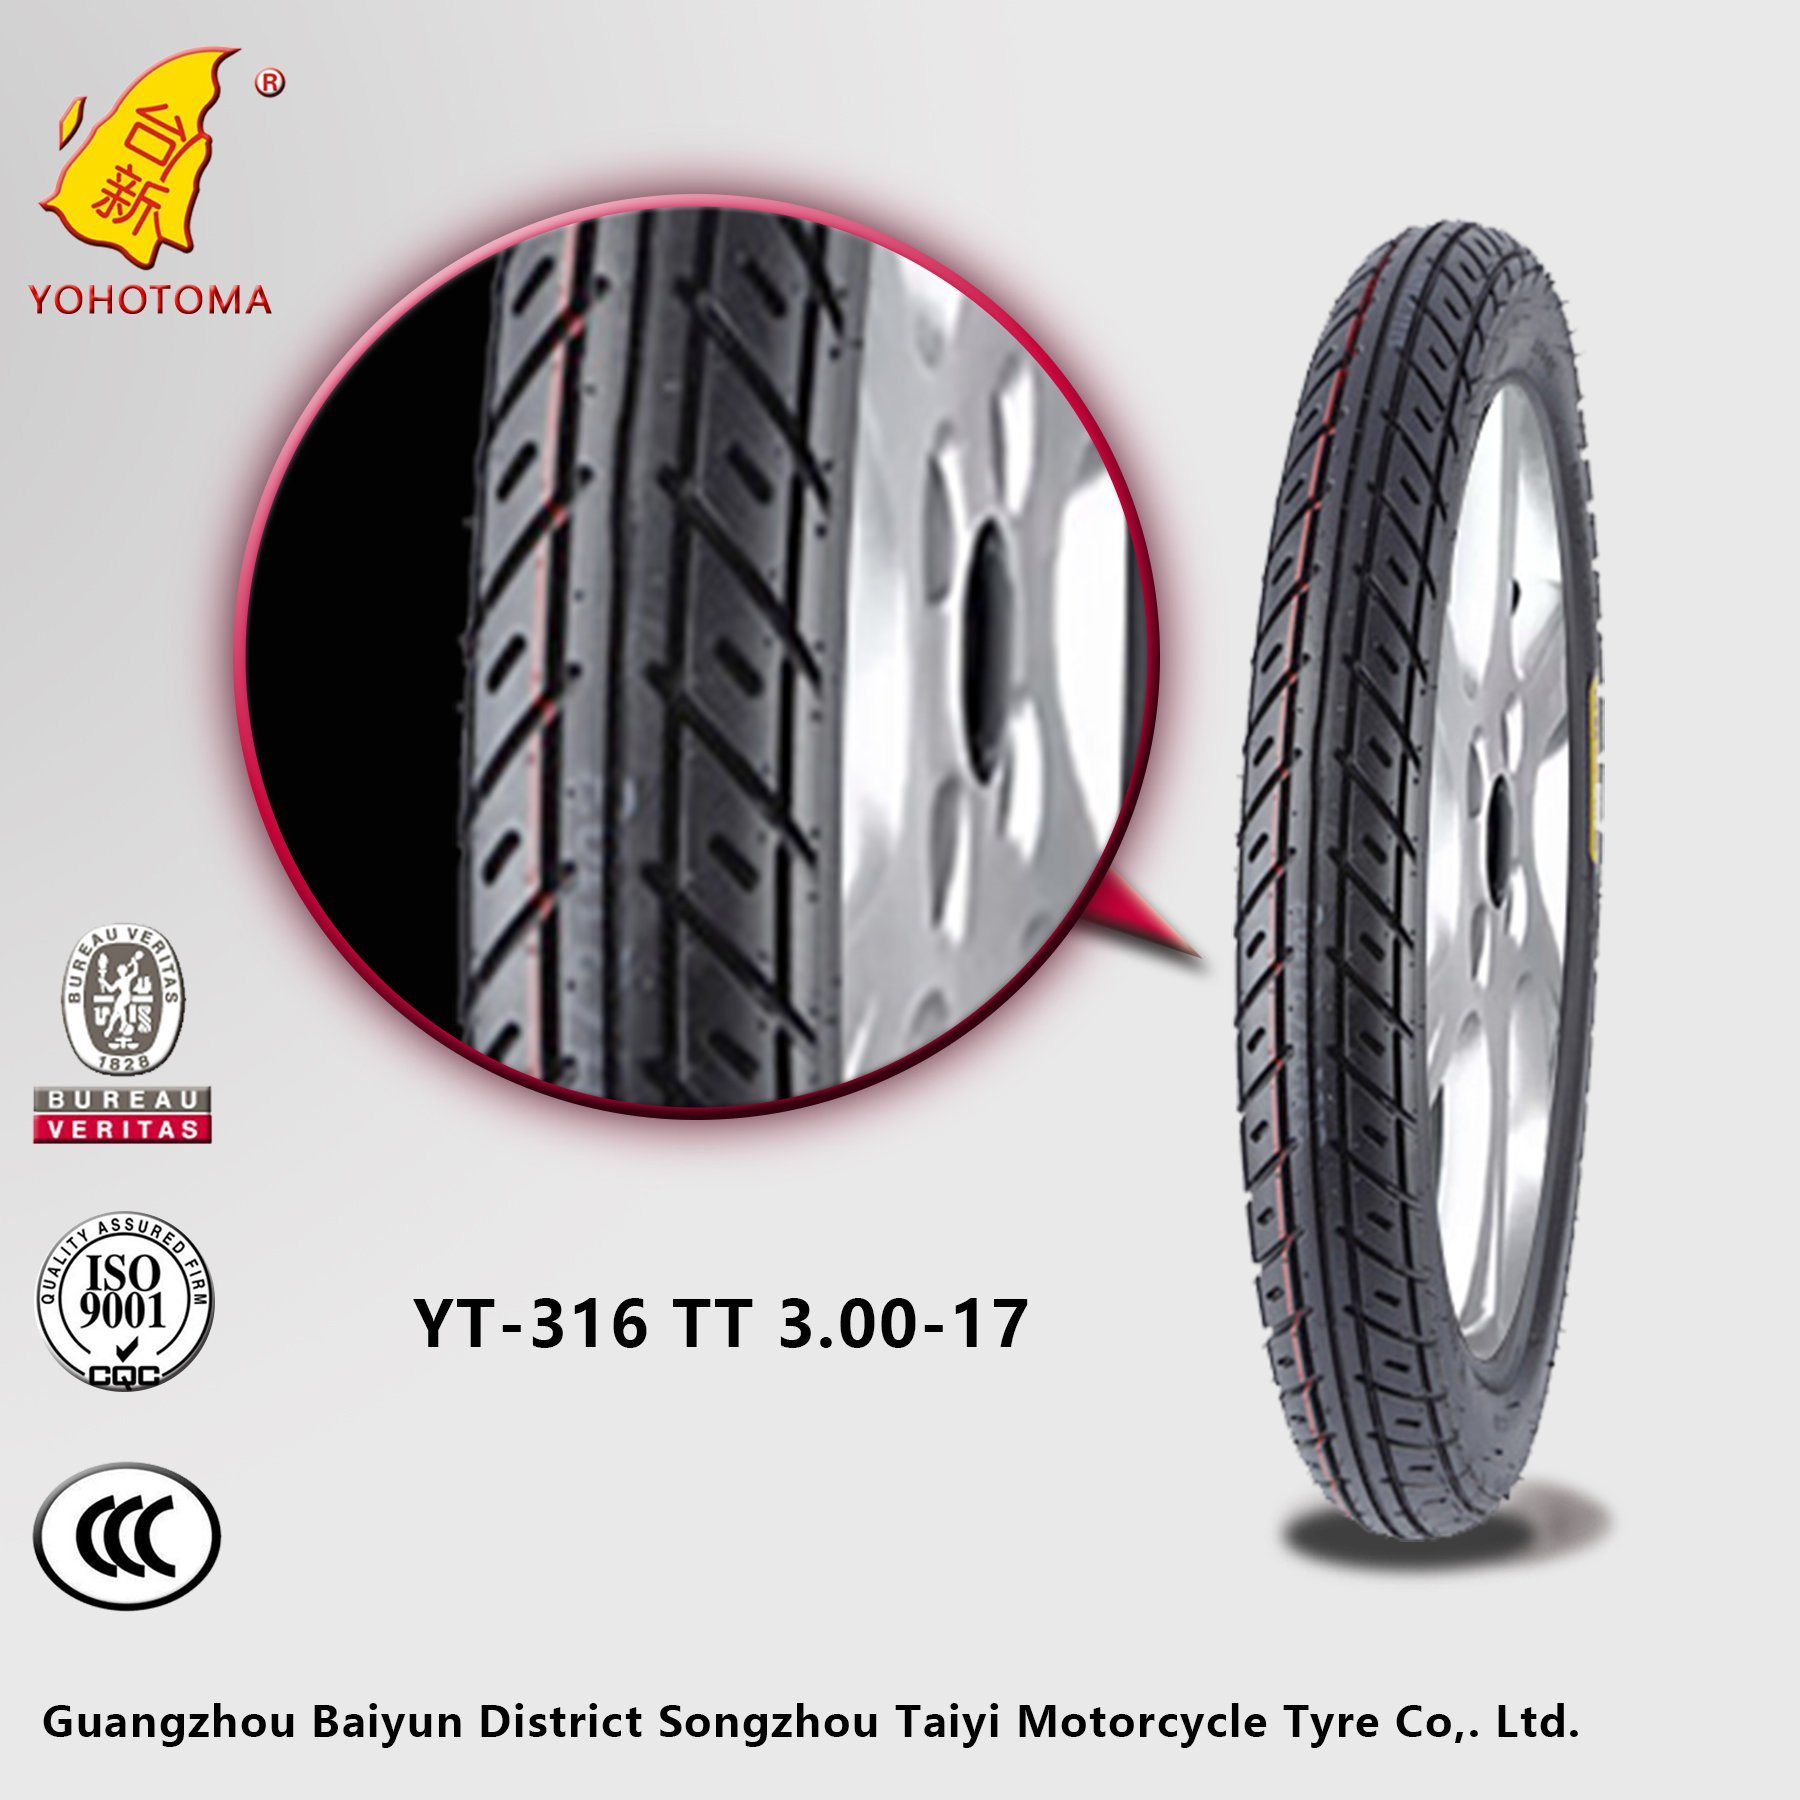 Motorcycle Parts Market Supply Motorcycle Tyre Yt-316 Tt3.00-17